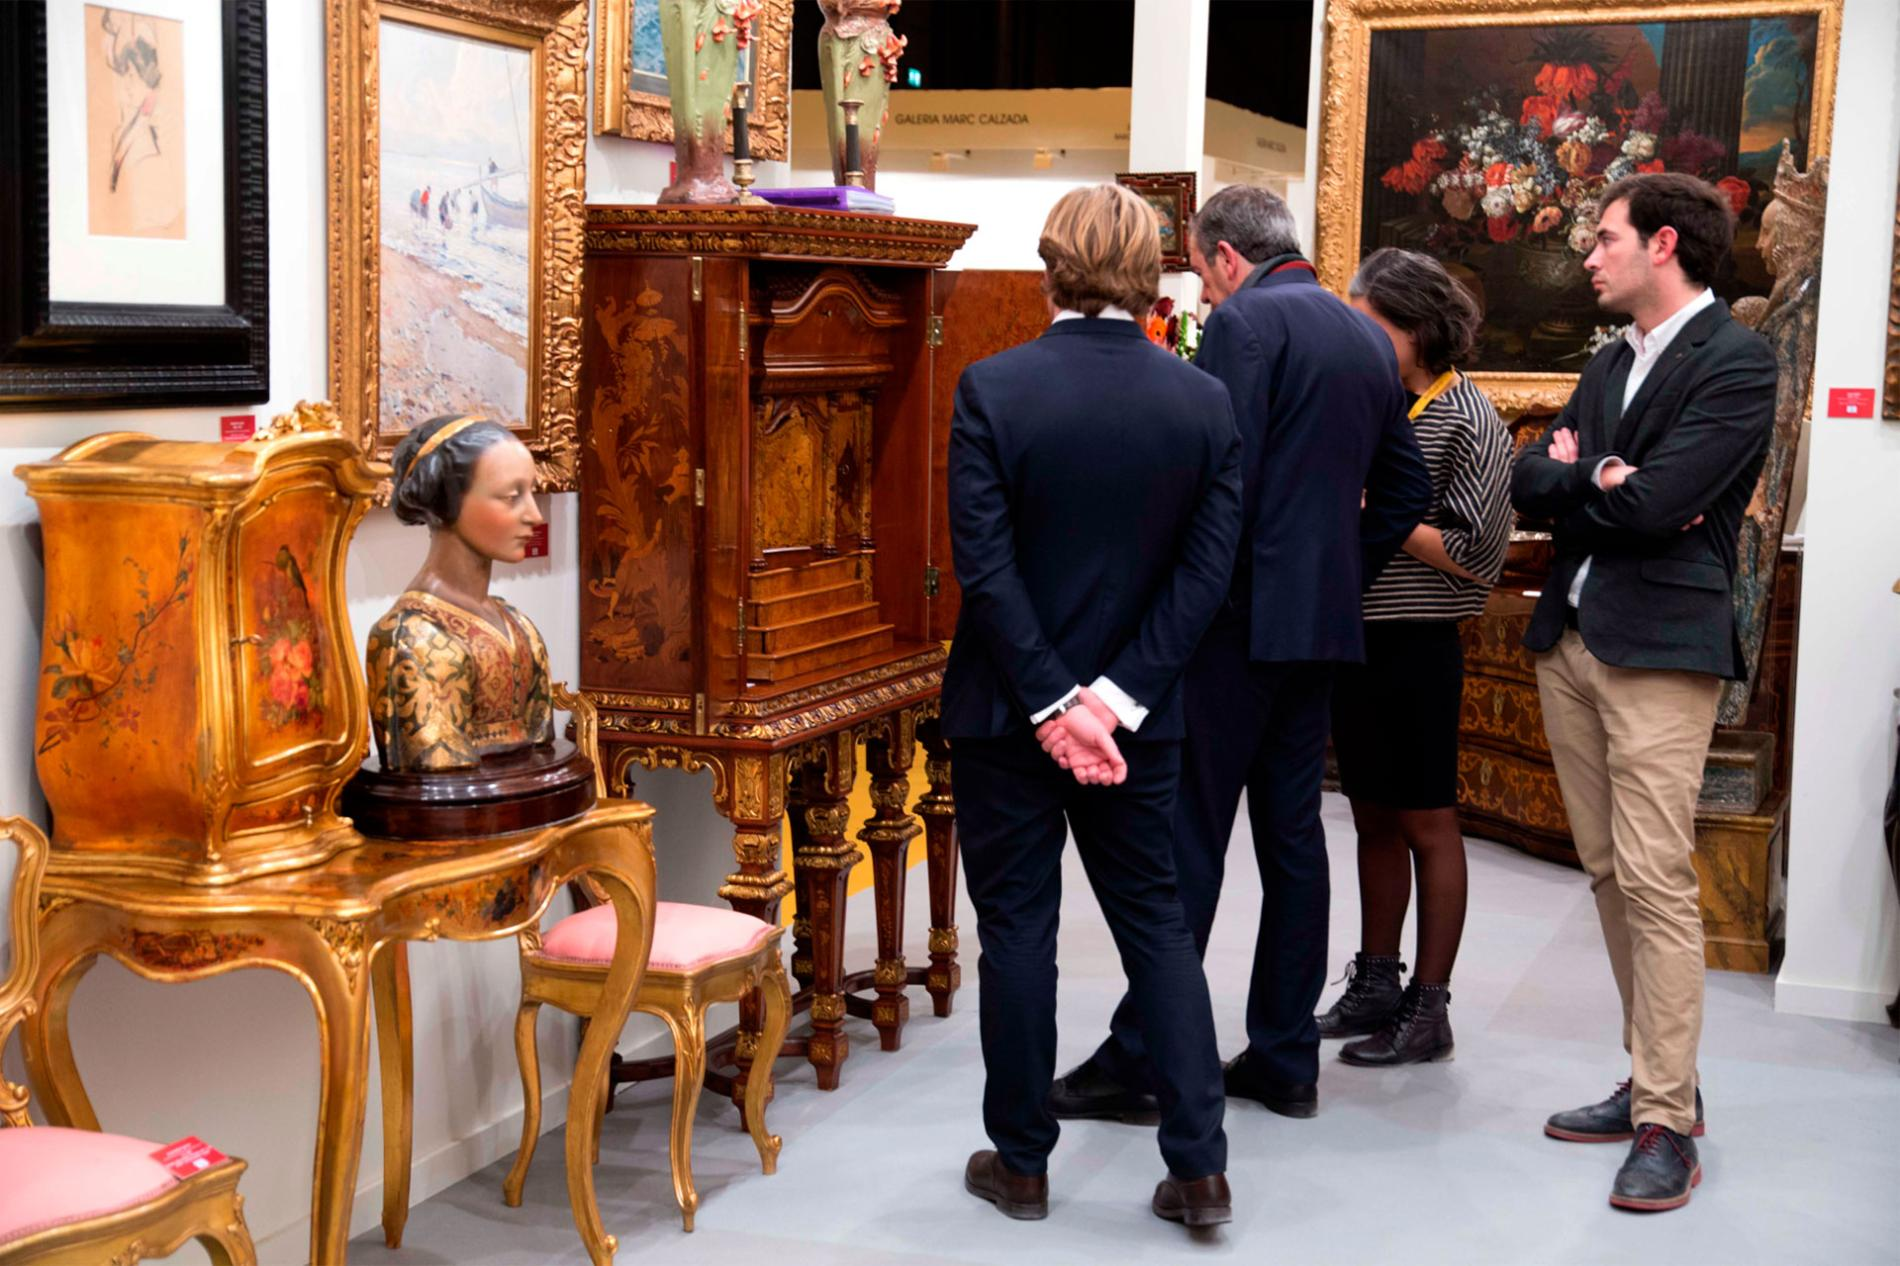 Visitors looking at antique furniture